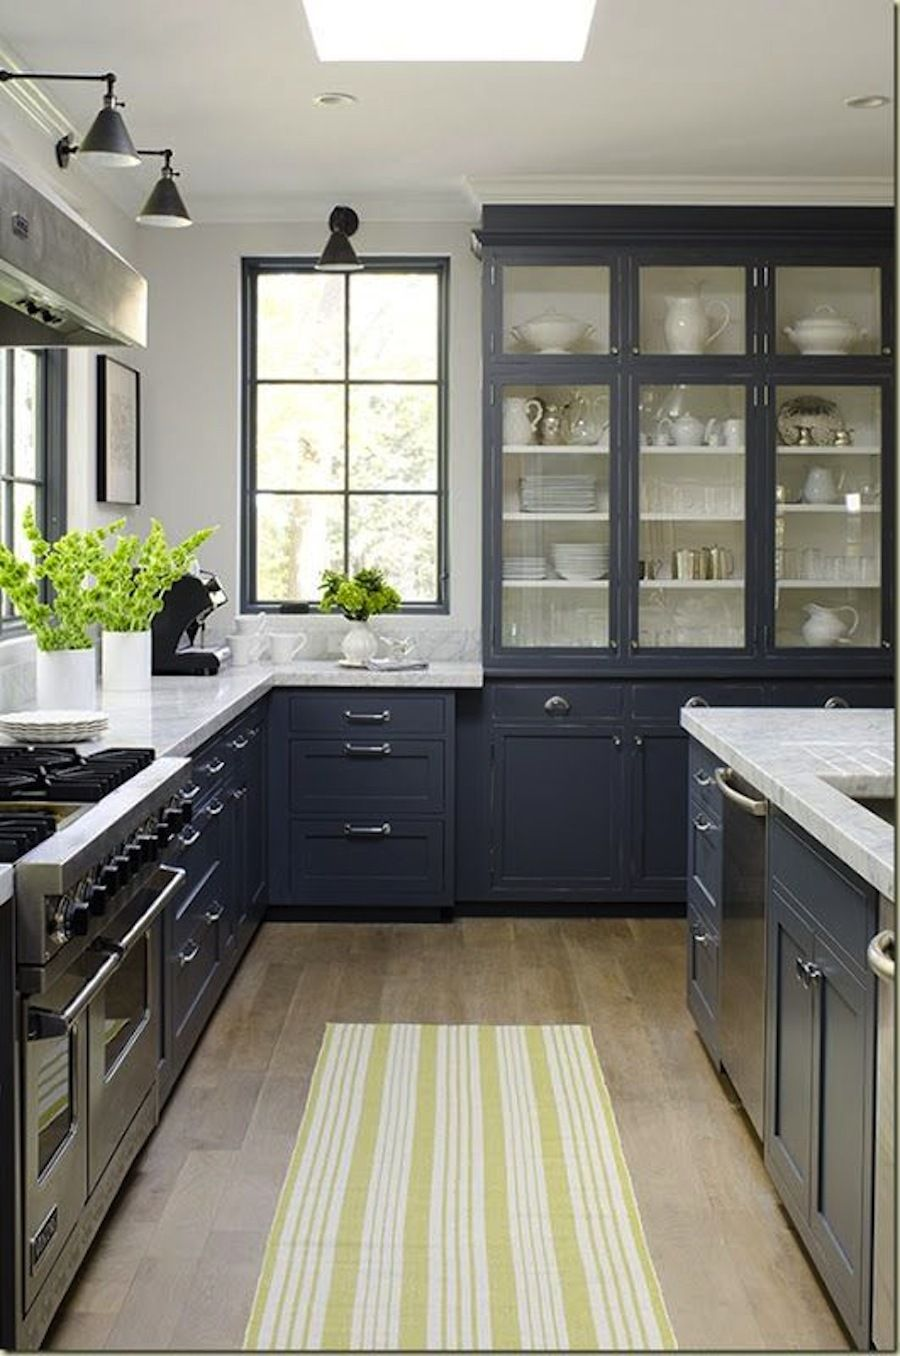 15 Stunning Gray Kitchens Kitchen Design Kitchen Inspirations